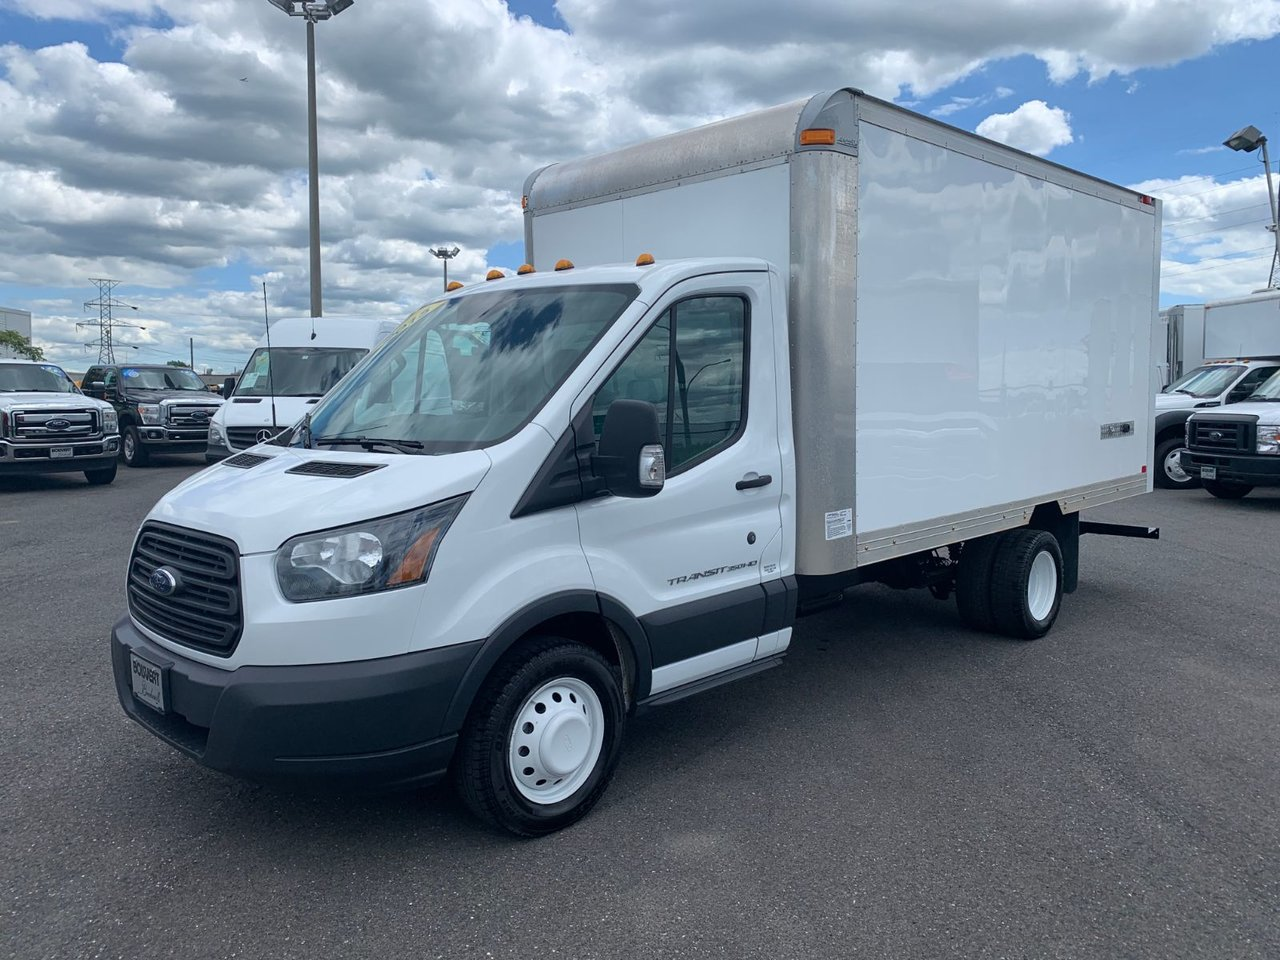 2015 Ford Transit Chassis Cab CUBE 14 PIEDS